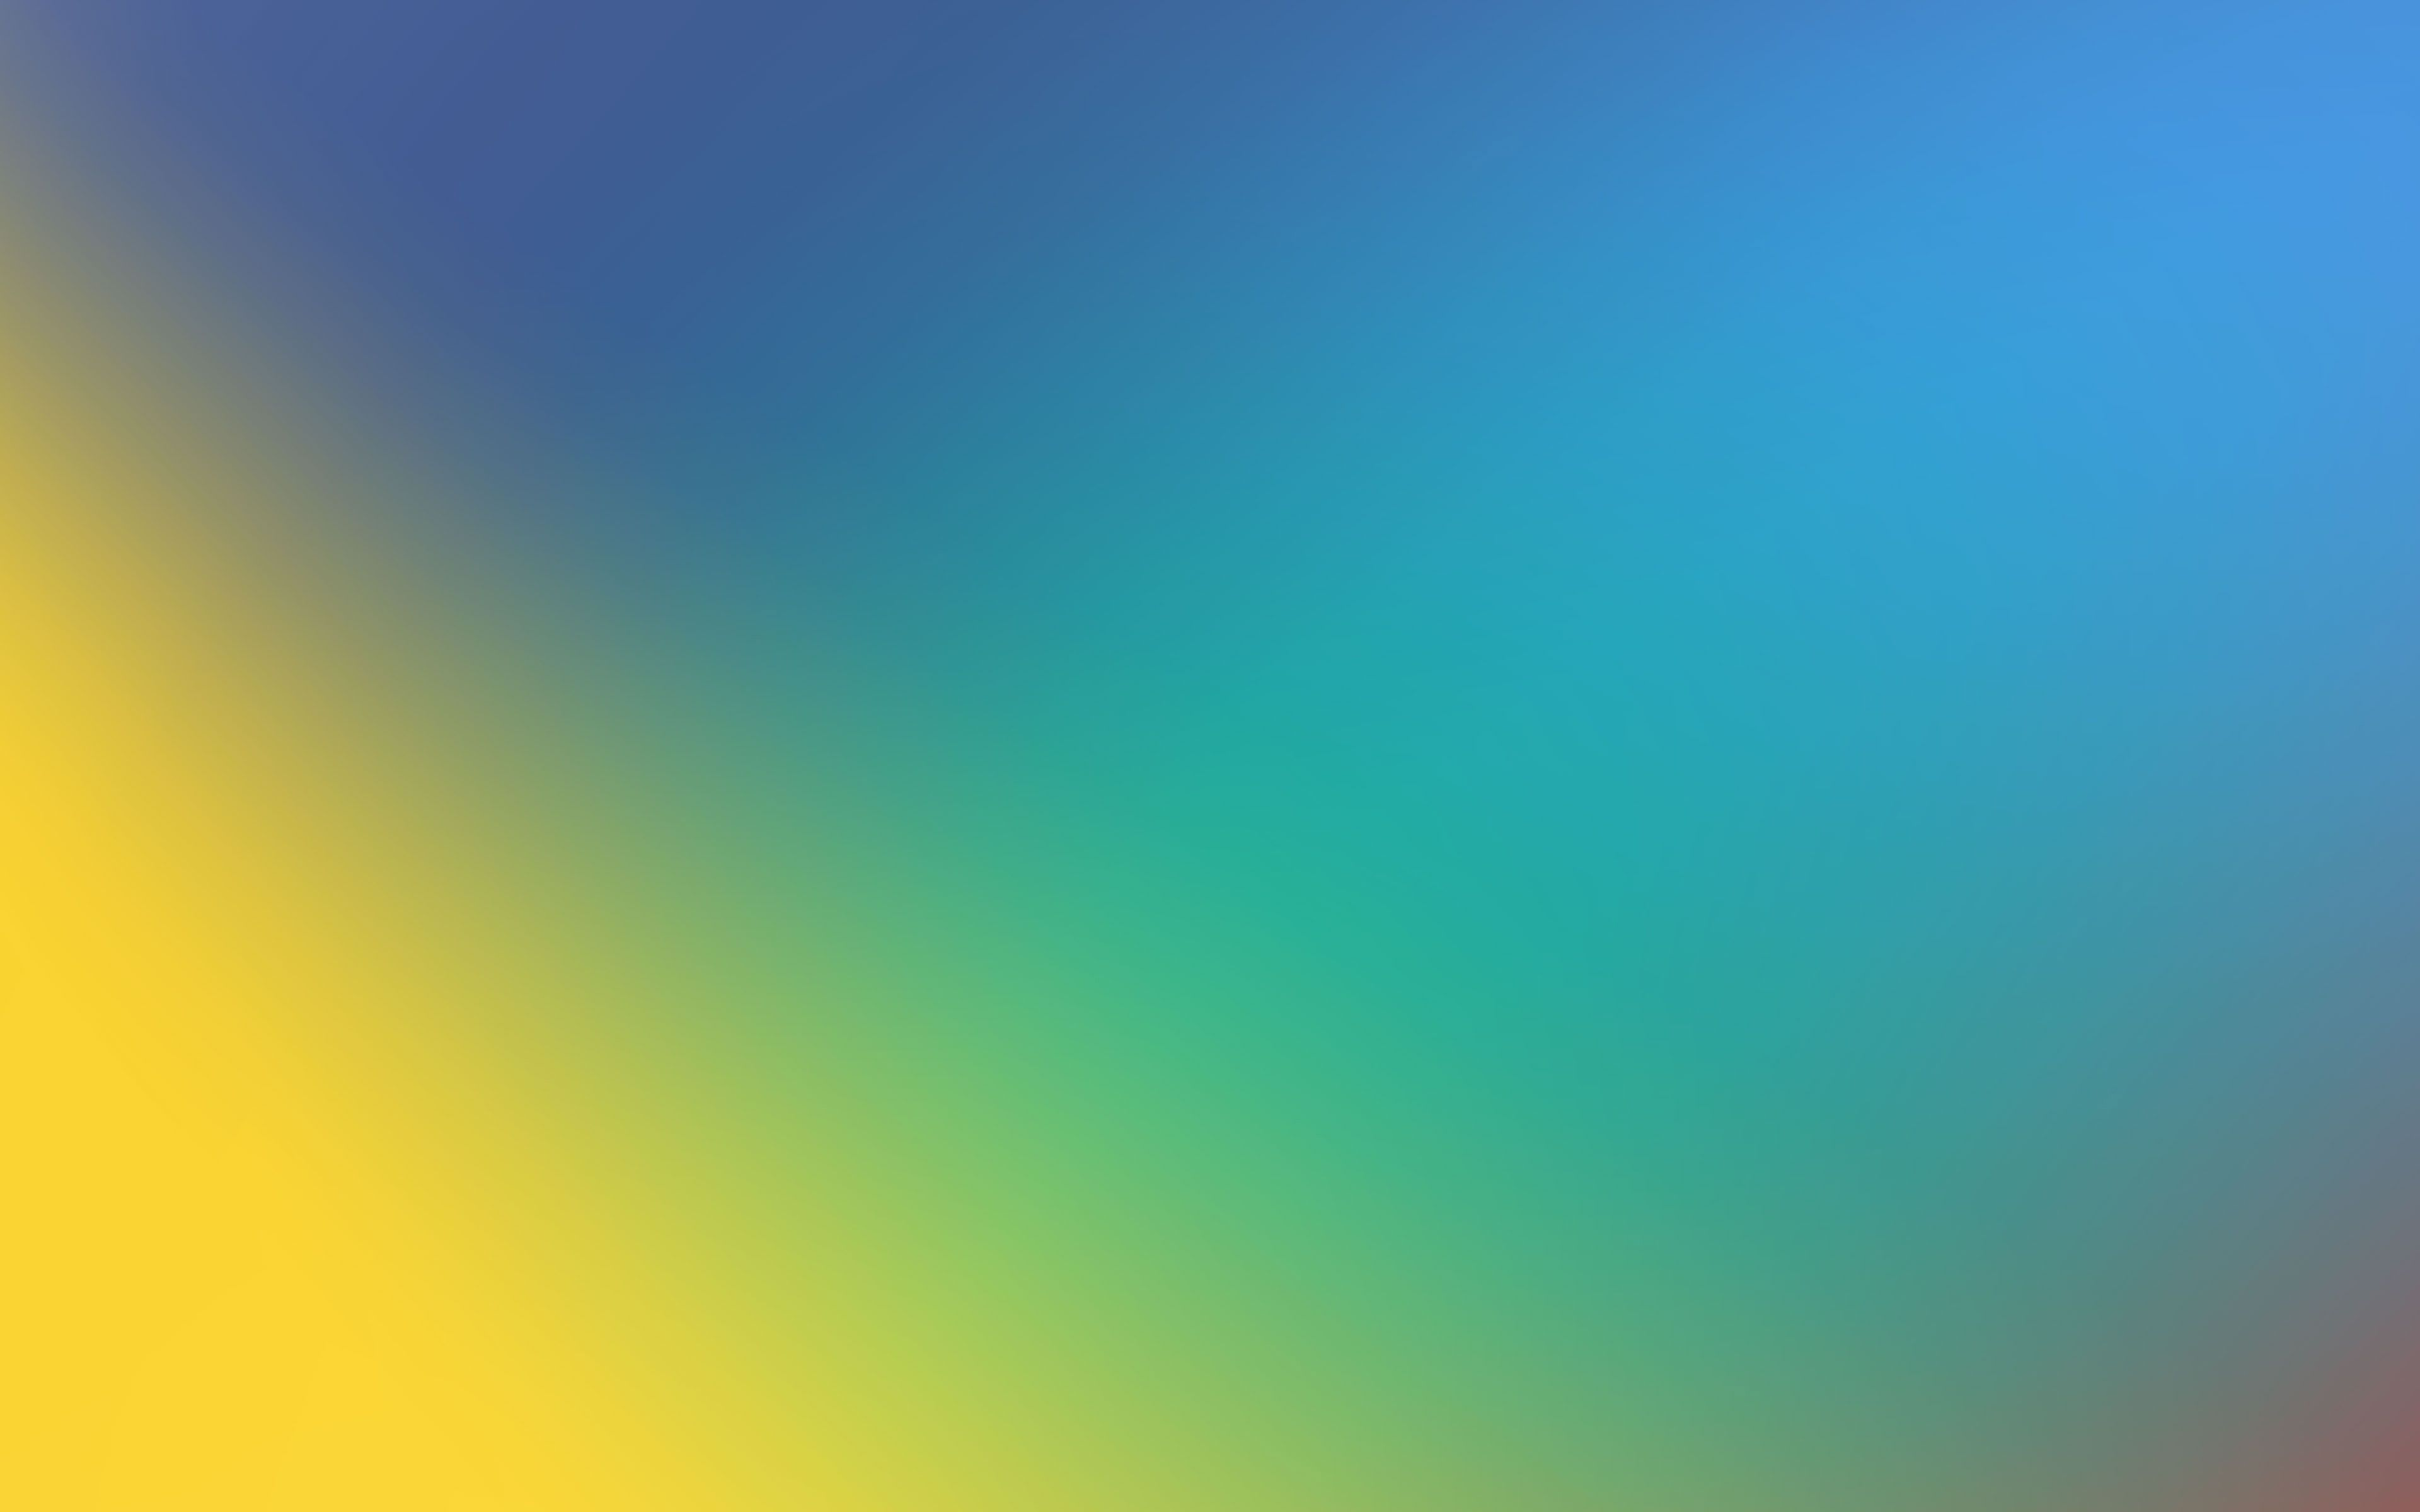 Colorful Gradient 4k Free Background Images Wallpaper Abstract Wallpaper